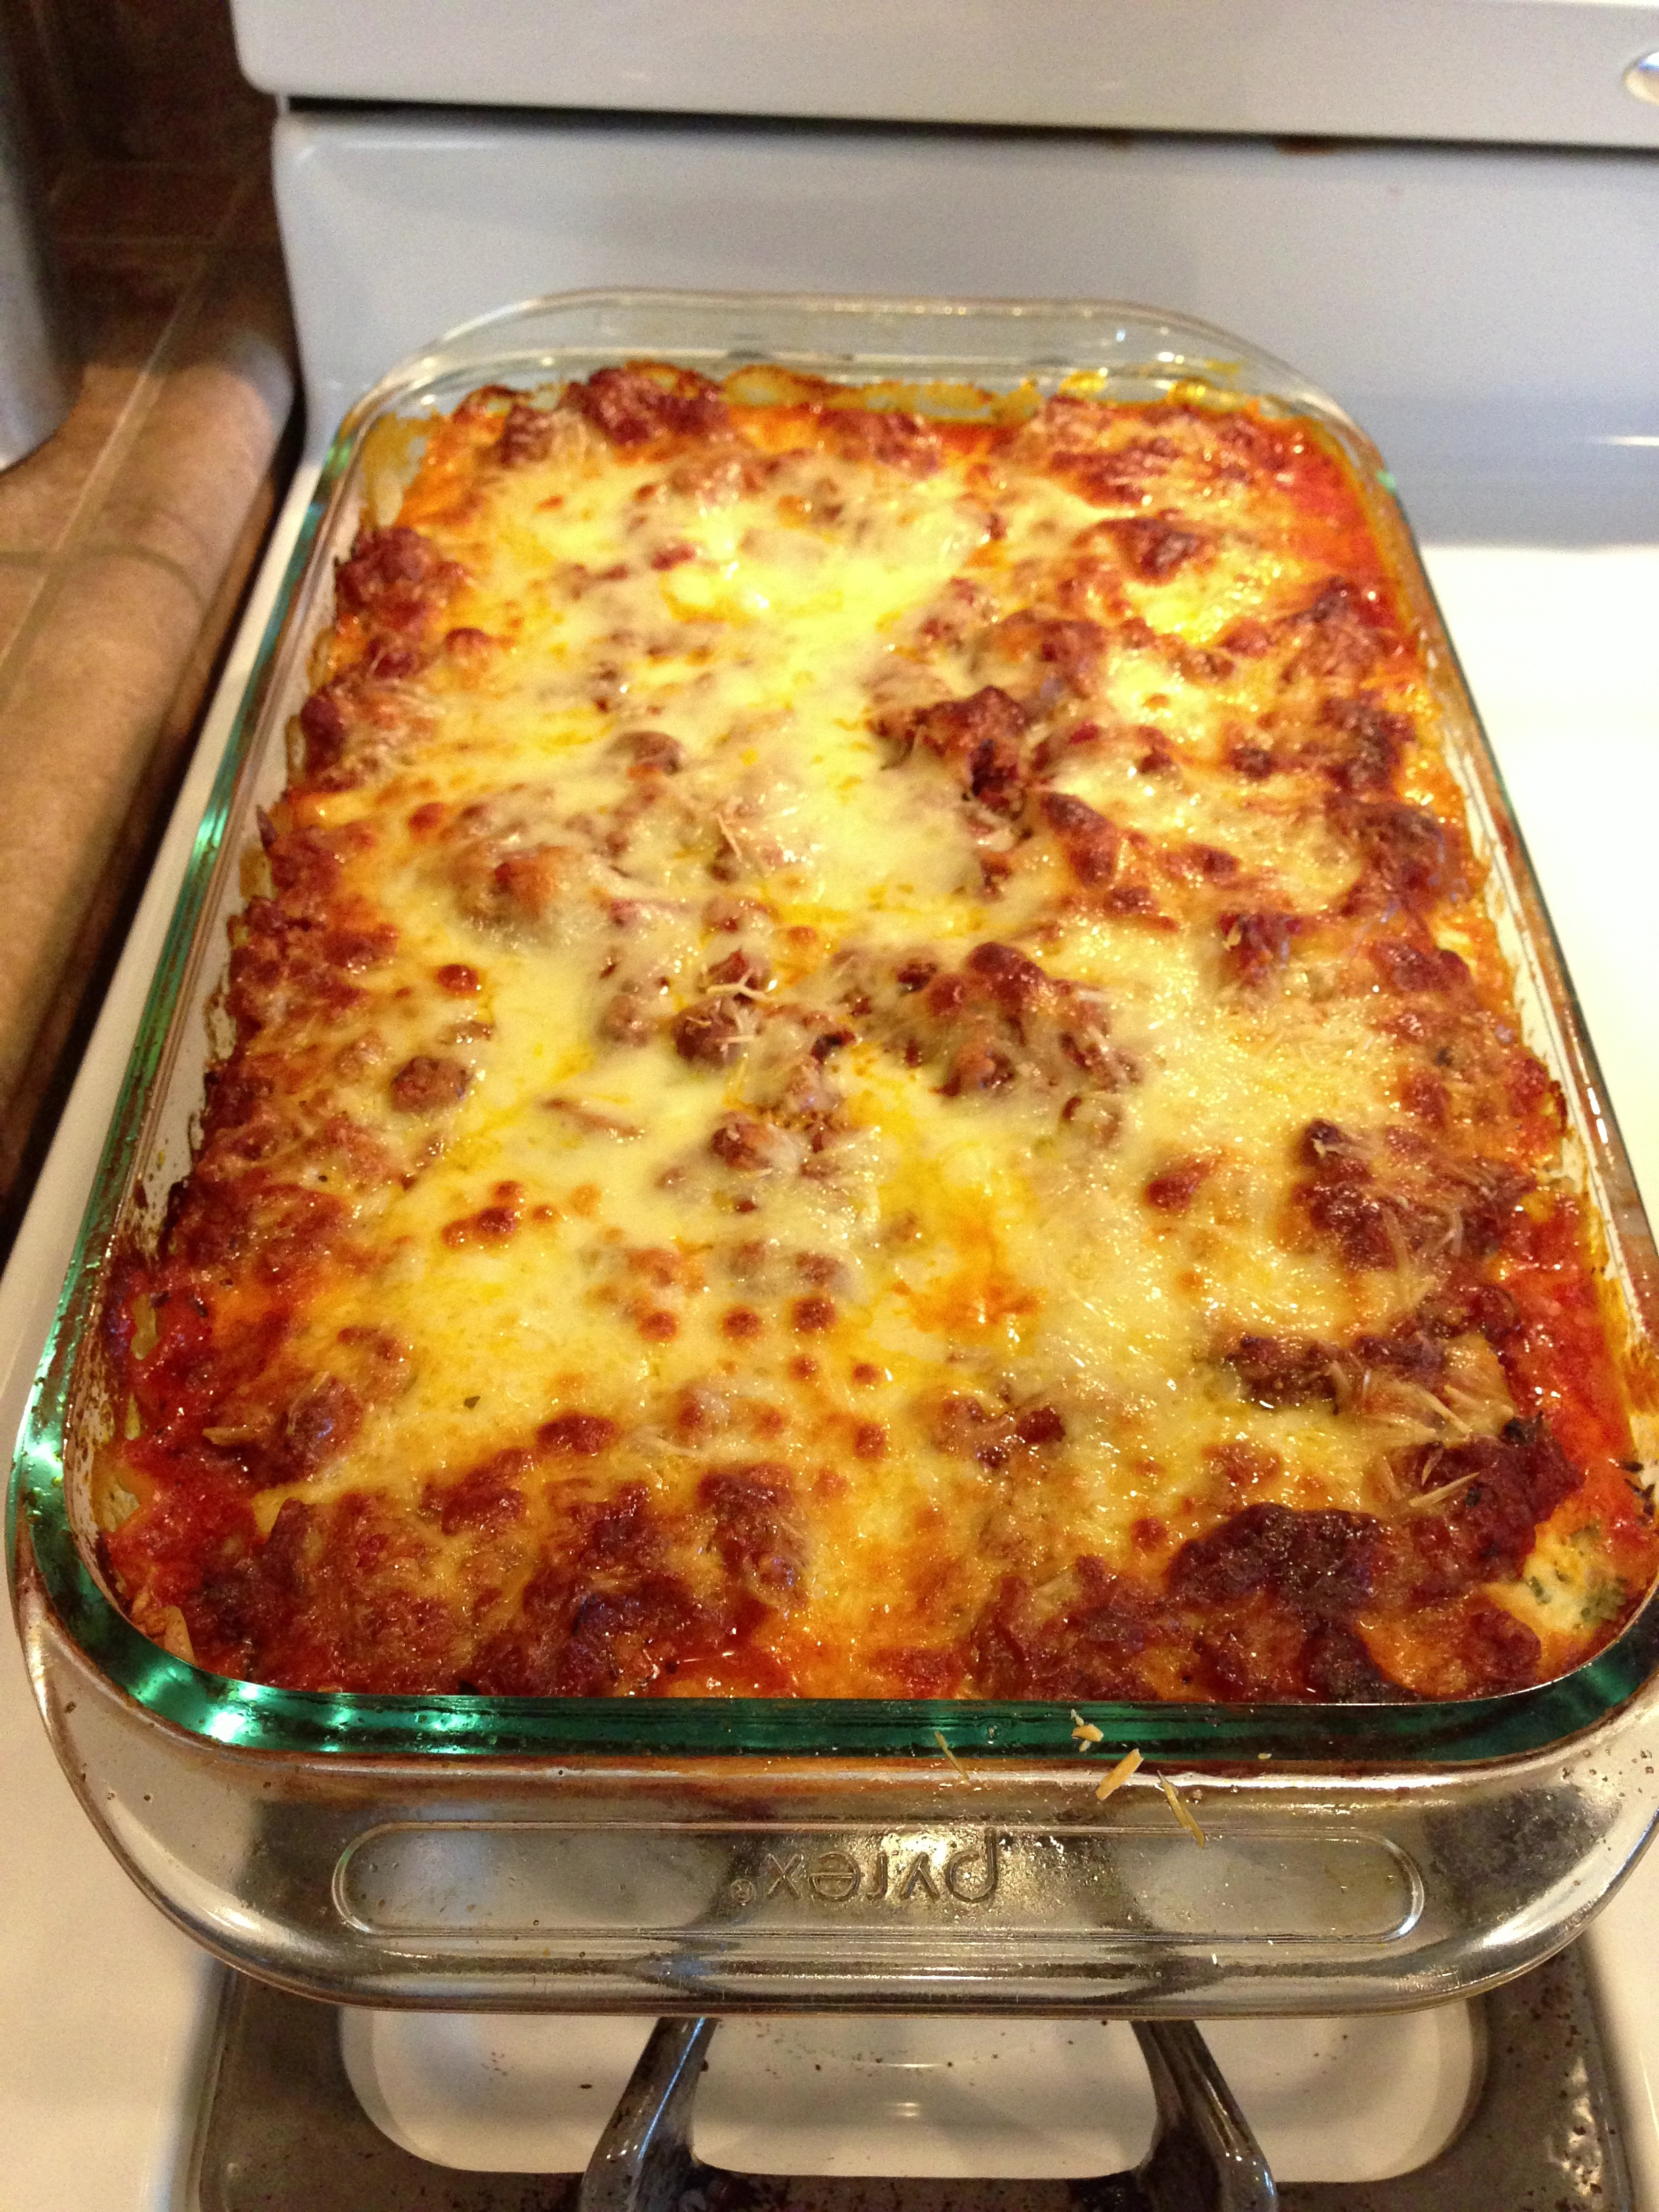 ... my husband vouched that it was the best lasagna I had made to date